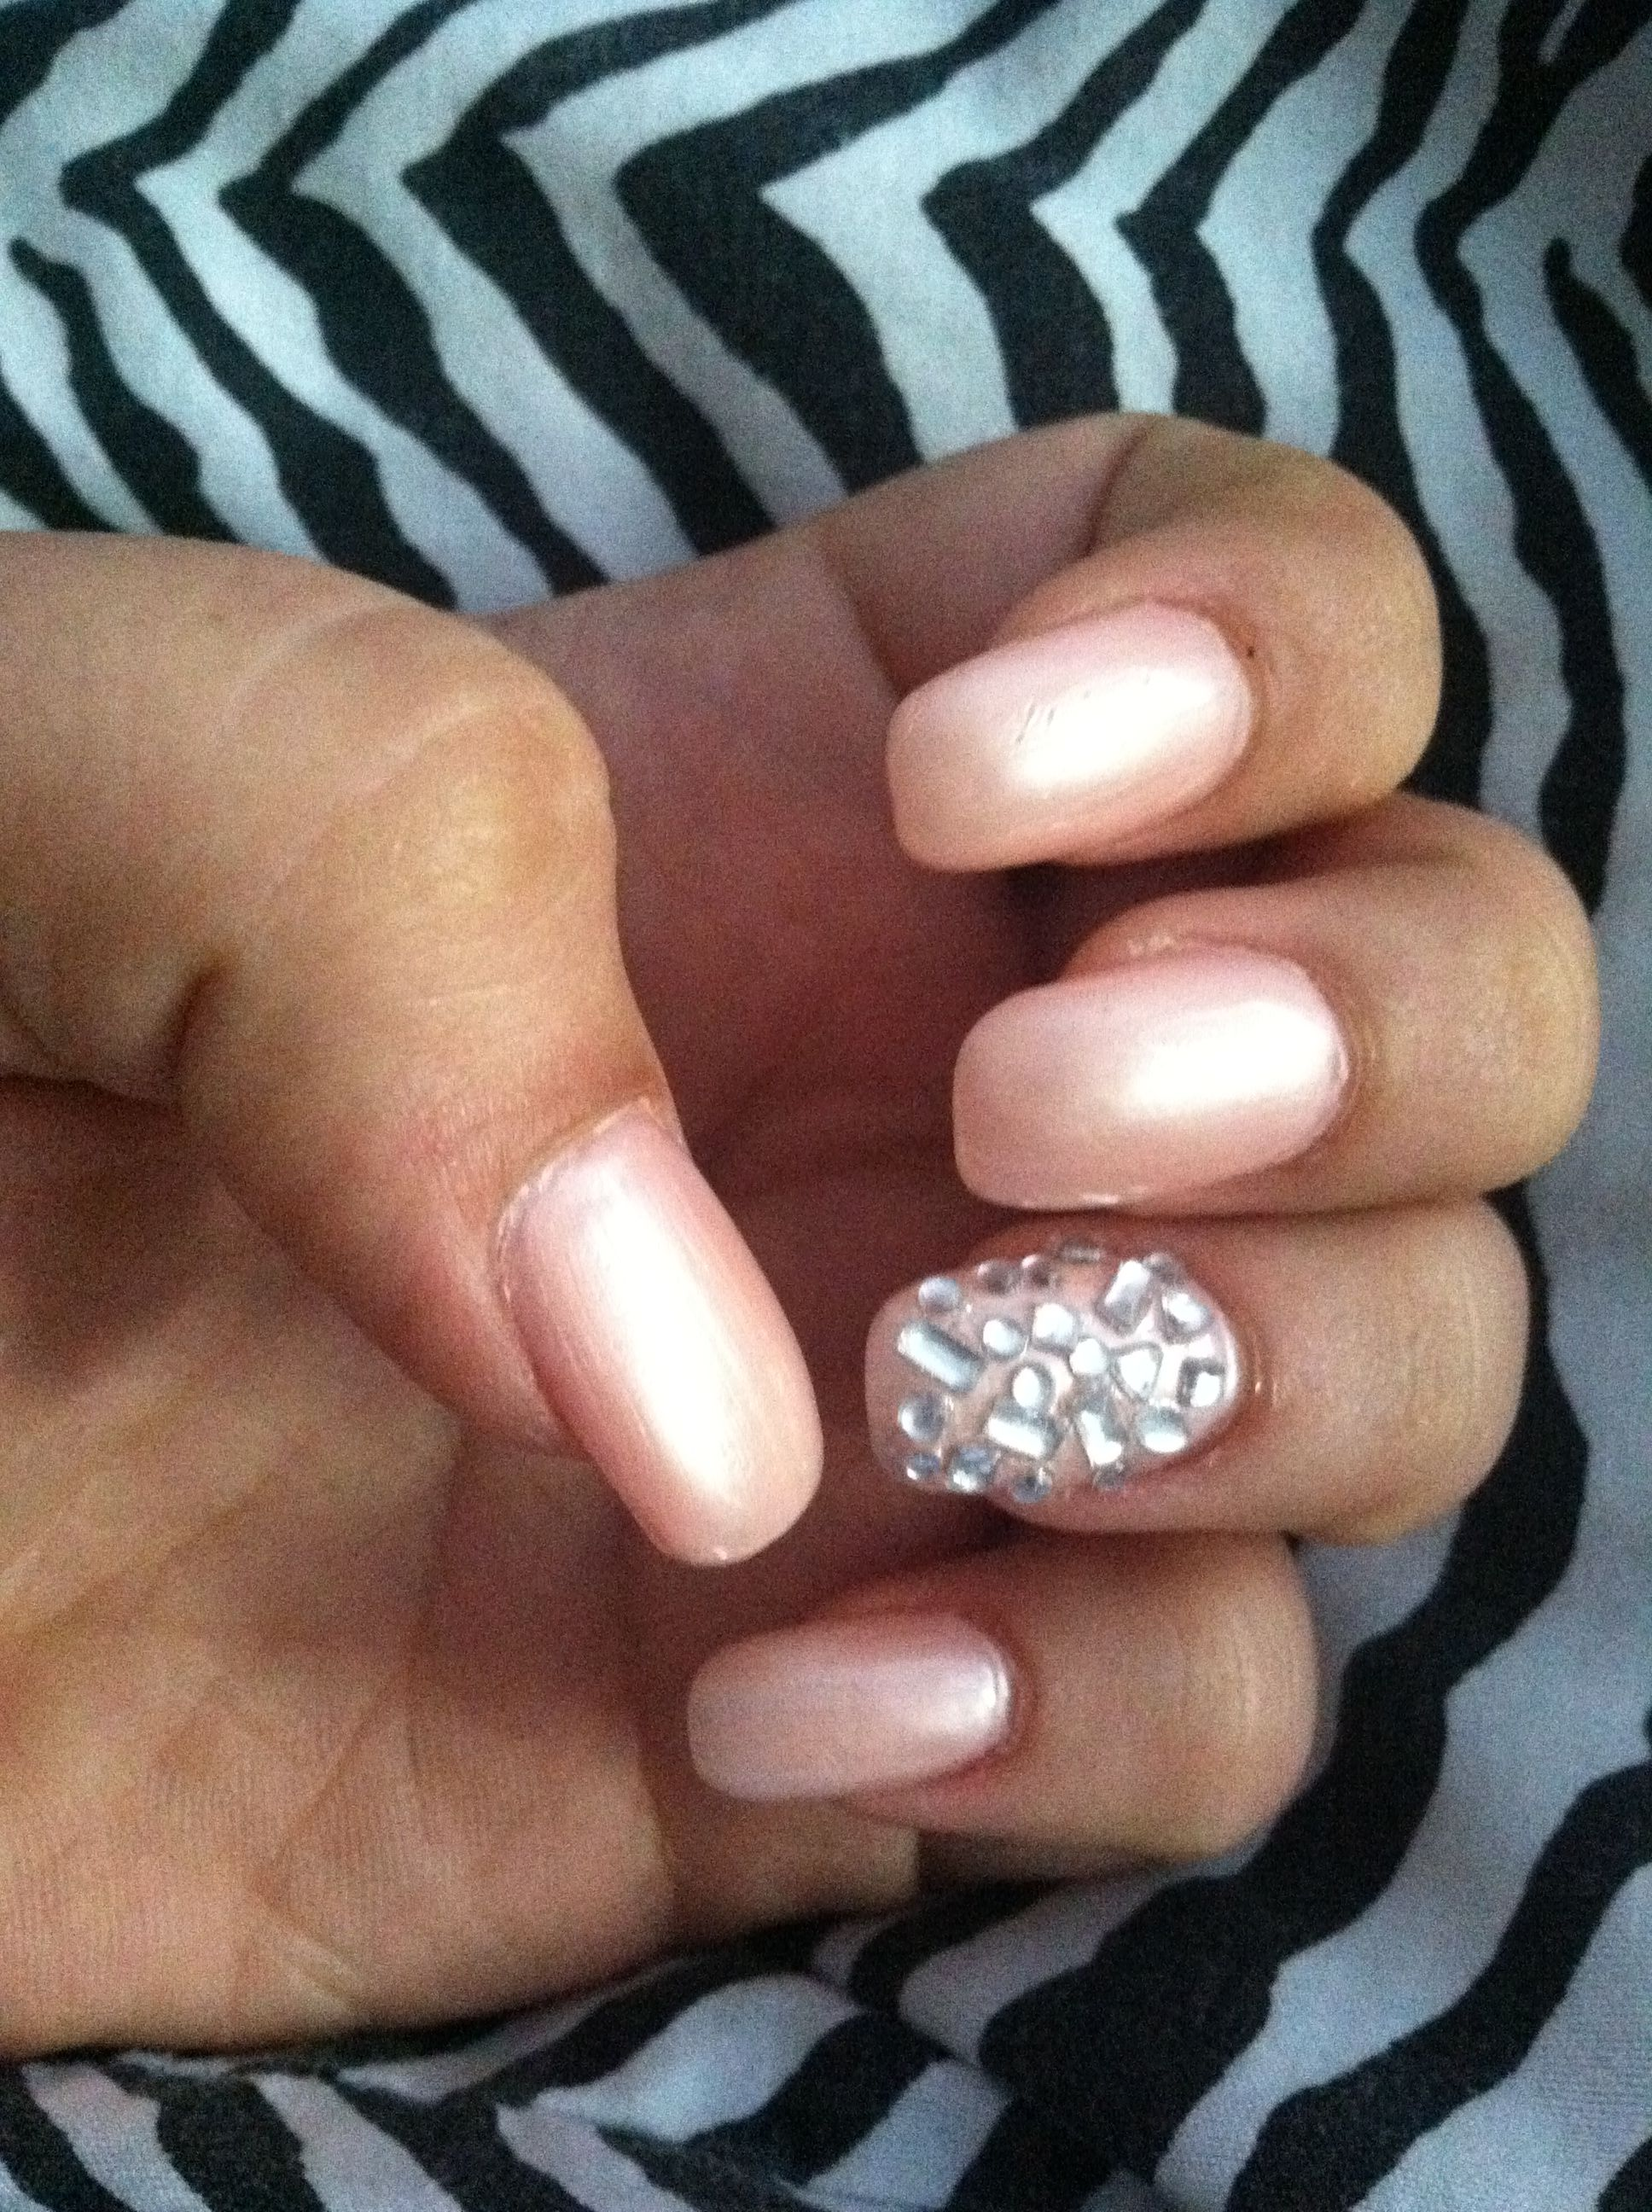 Diamond nails neutral pink acrylic nails soft pink color silver